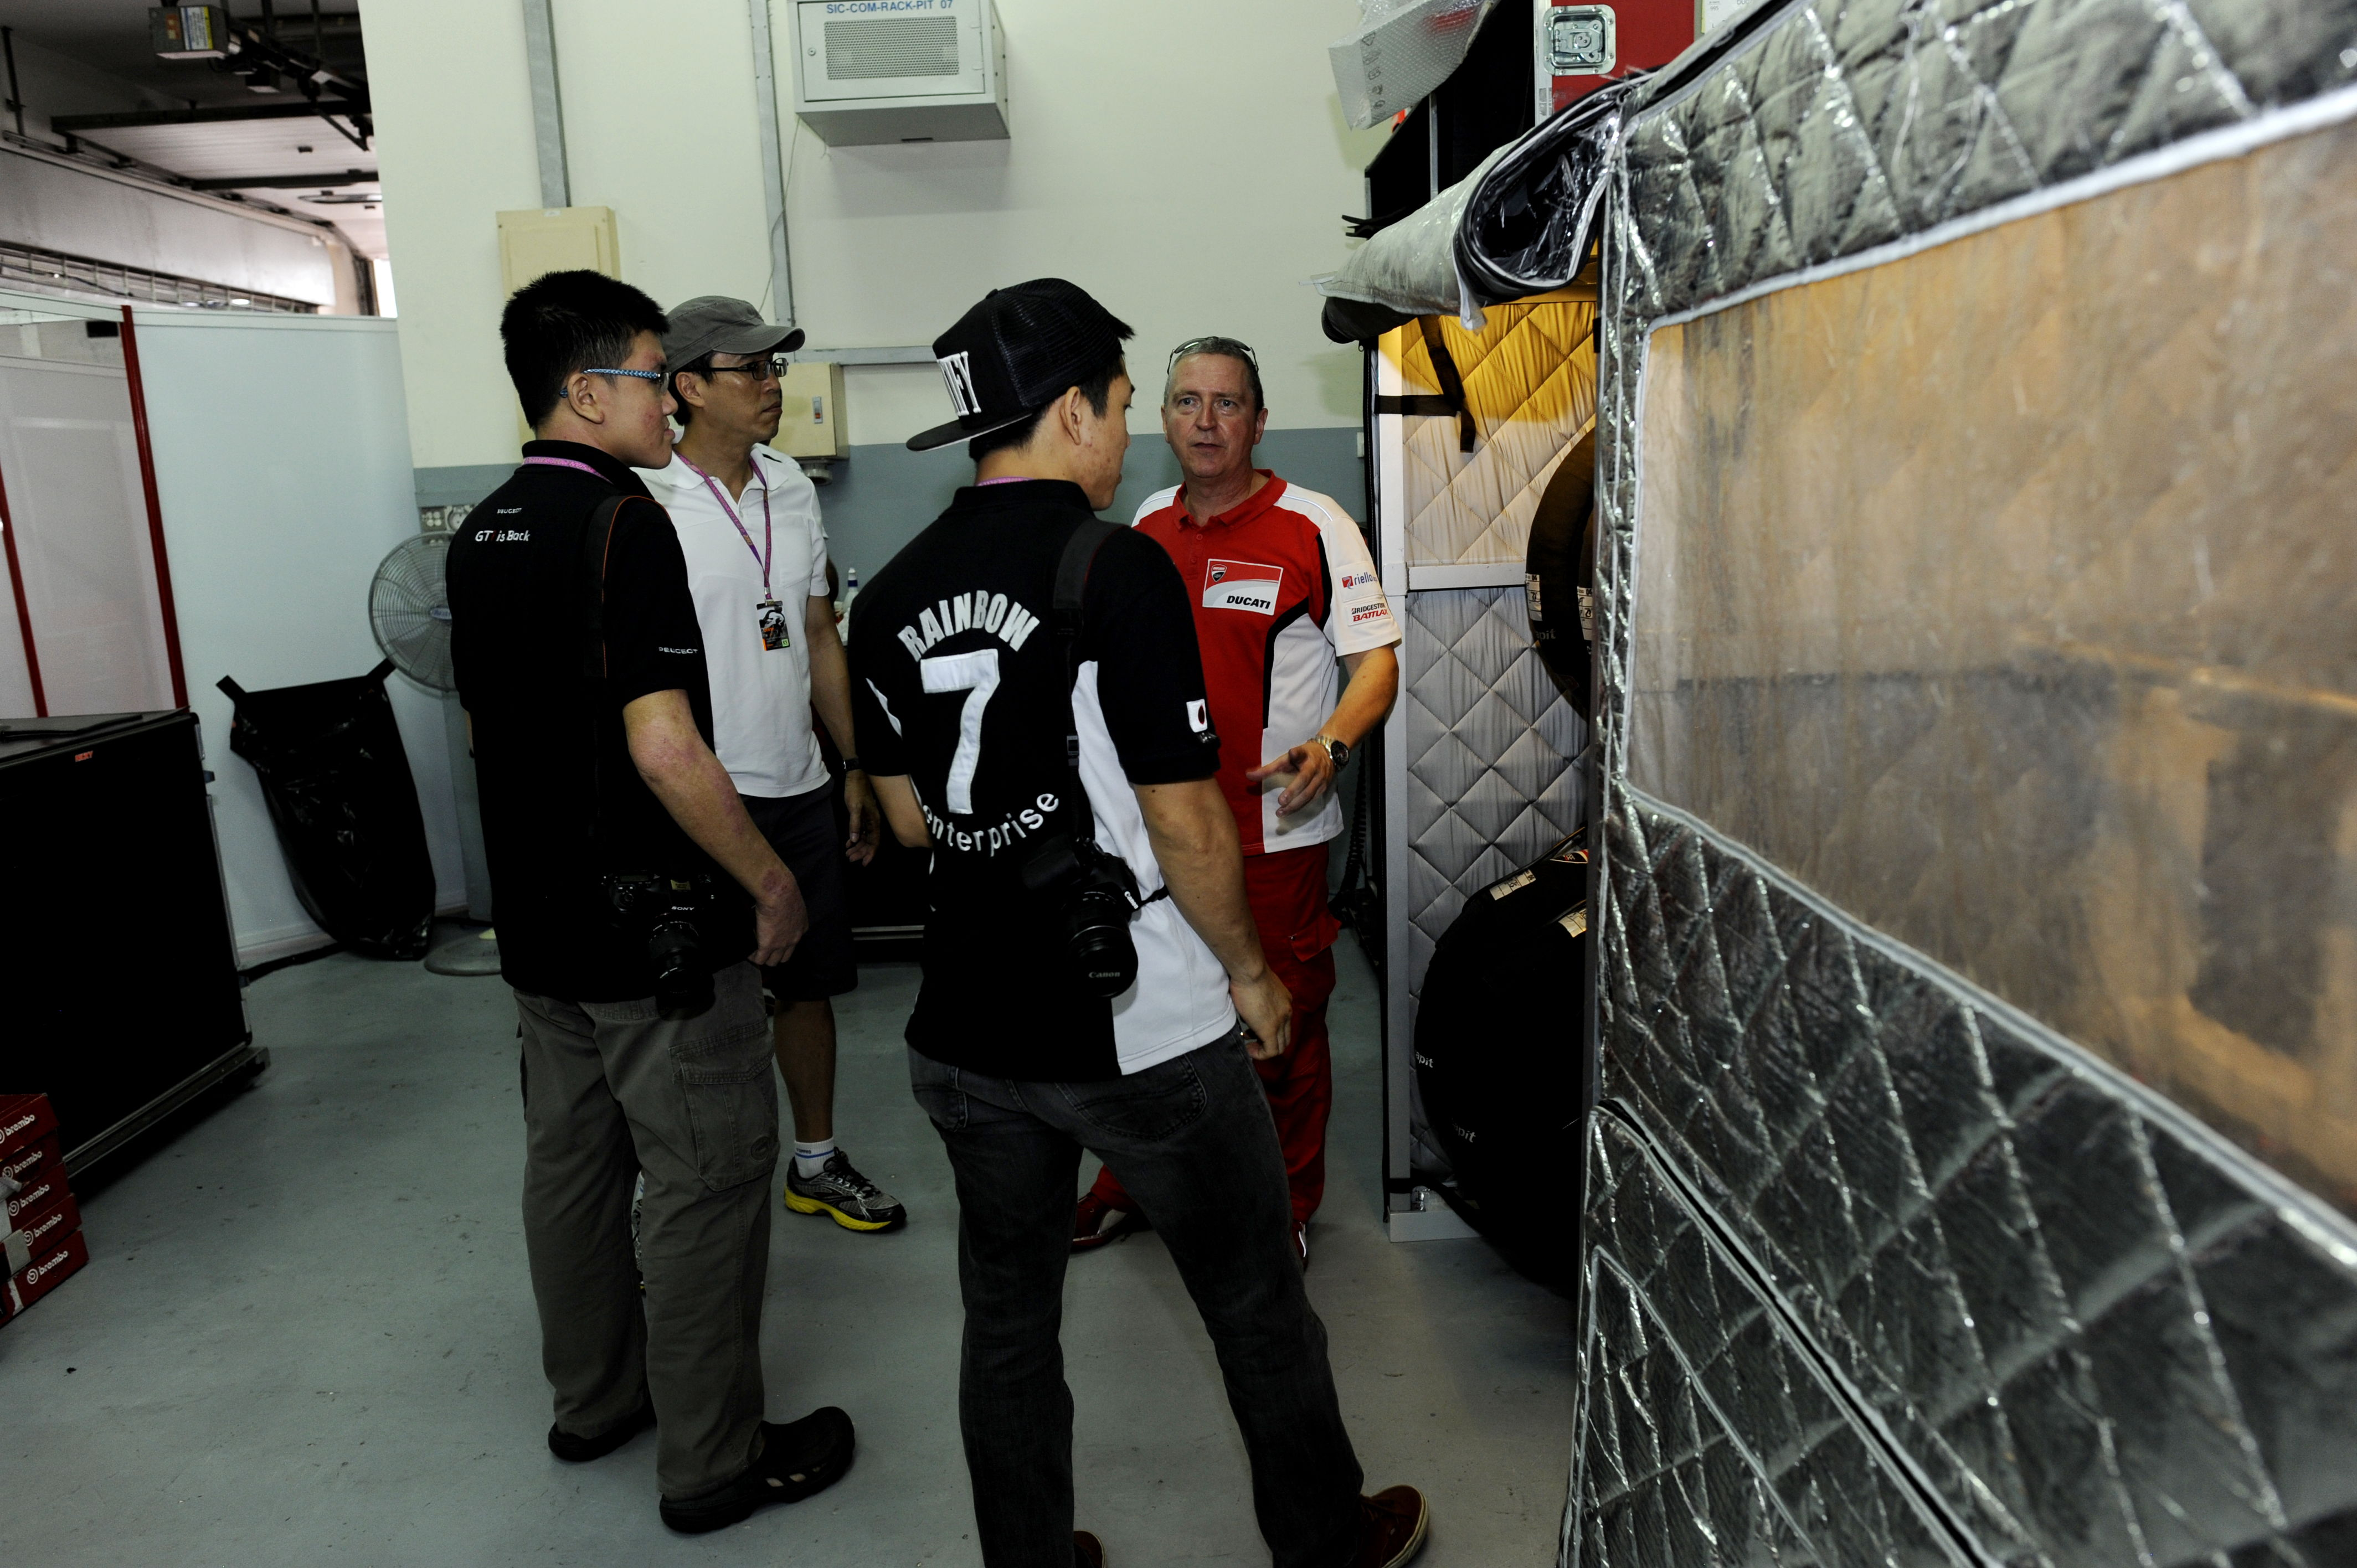 Being shown where Ducati preheats their tires for maximum performance when it hits the track